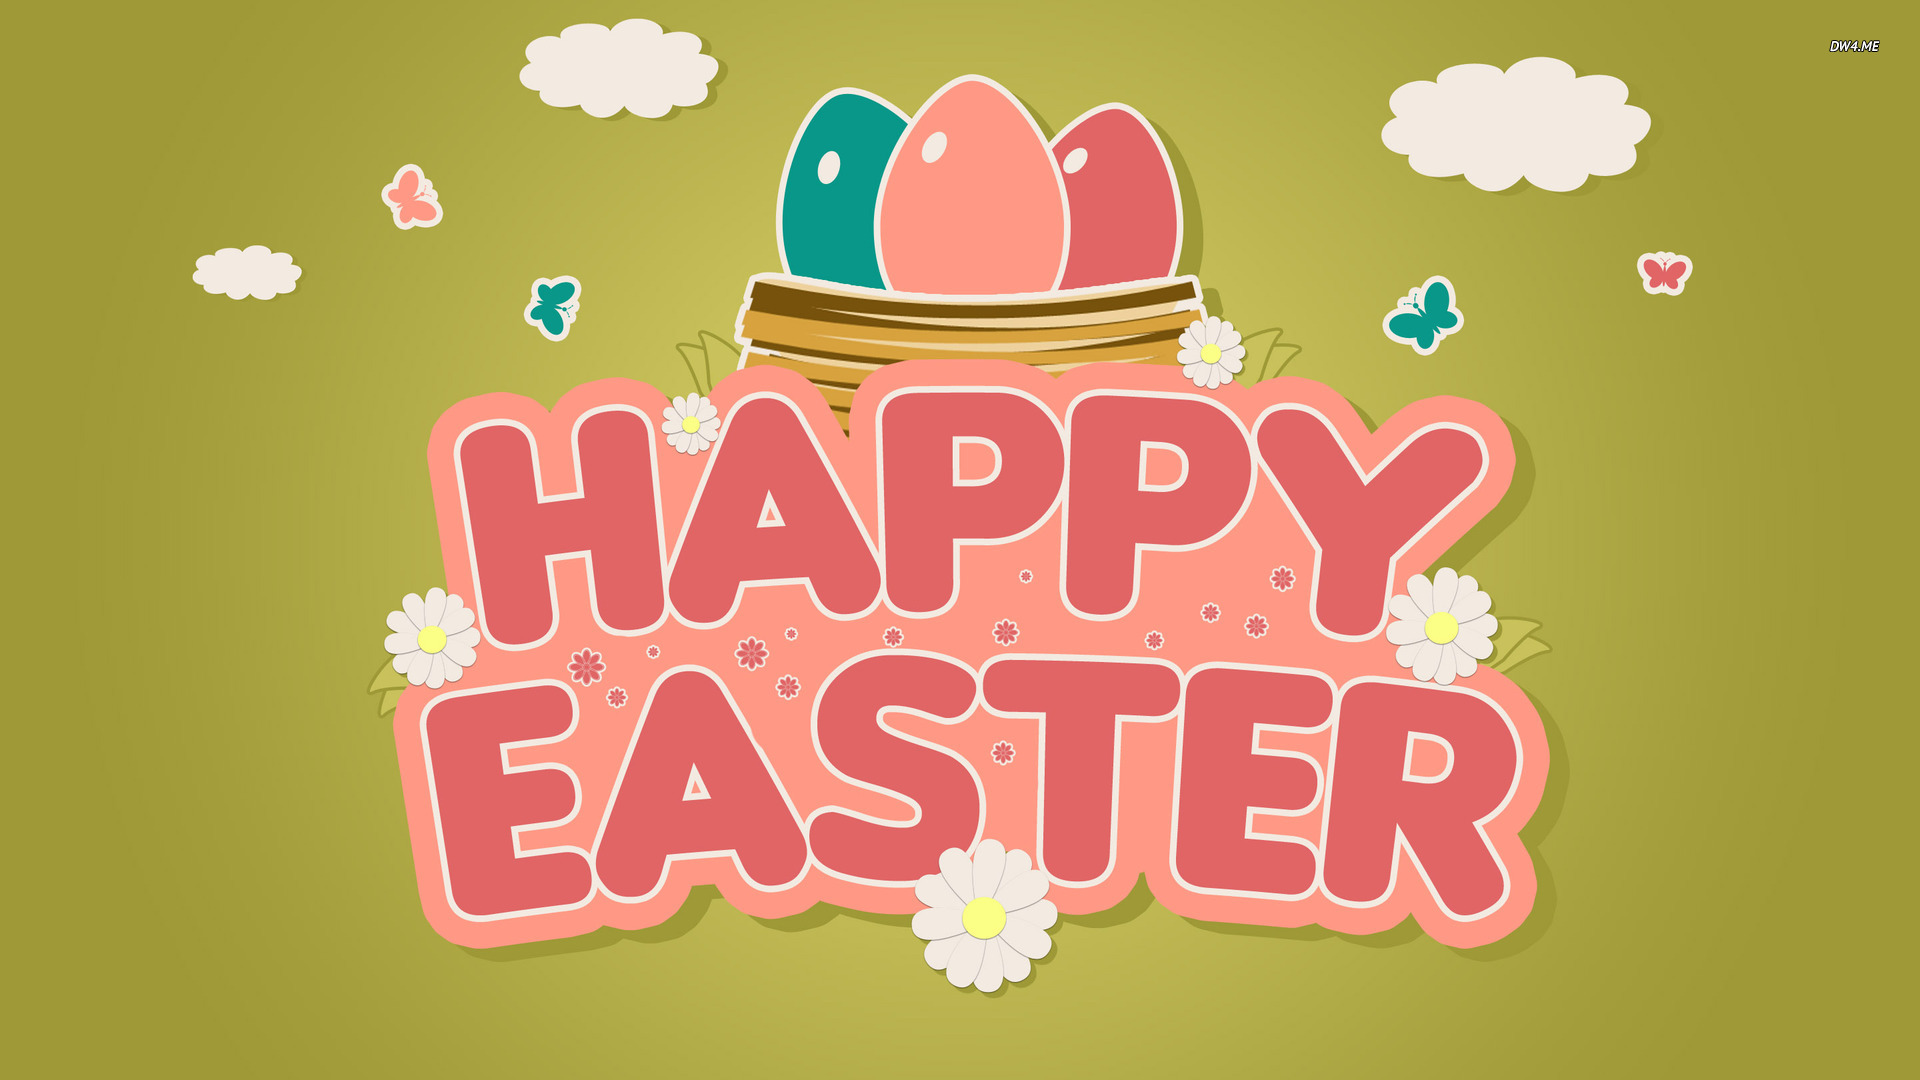 http://images6.fanpop.com/image/photos/36800000/Happy-Easter-happy-easter-all-my-fans-36884060-1920-1080.jpg